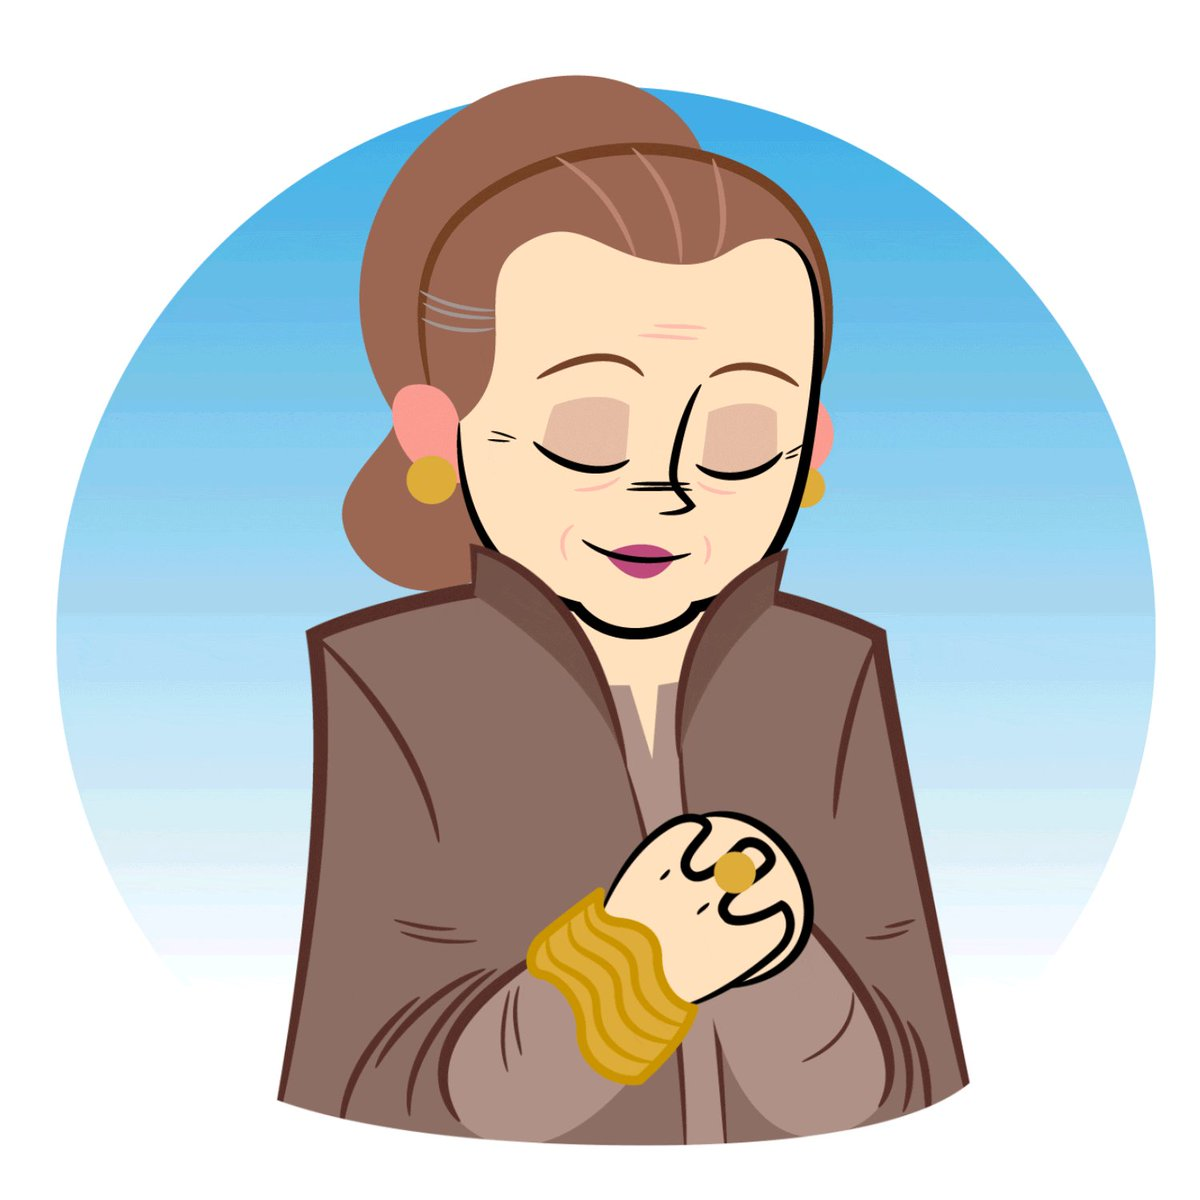 today make general leia proud. keep trying and be kind.